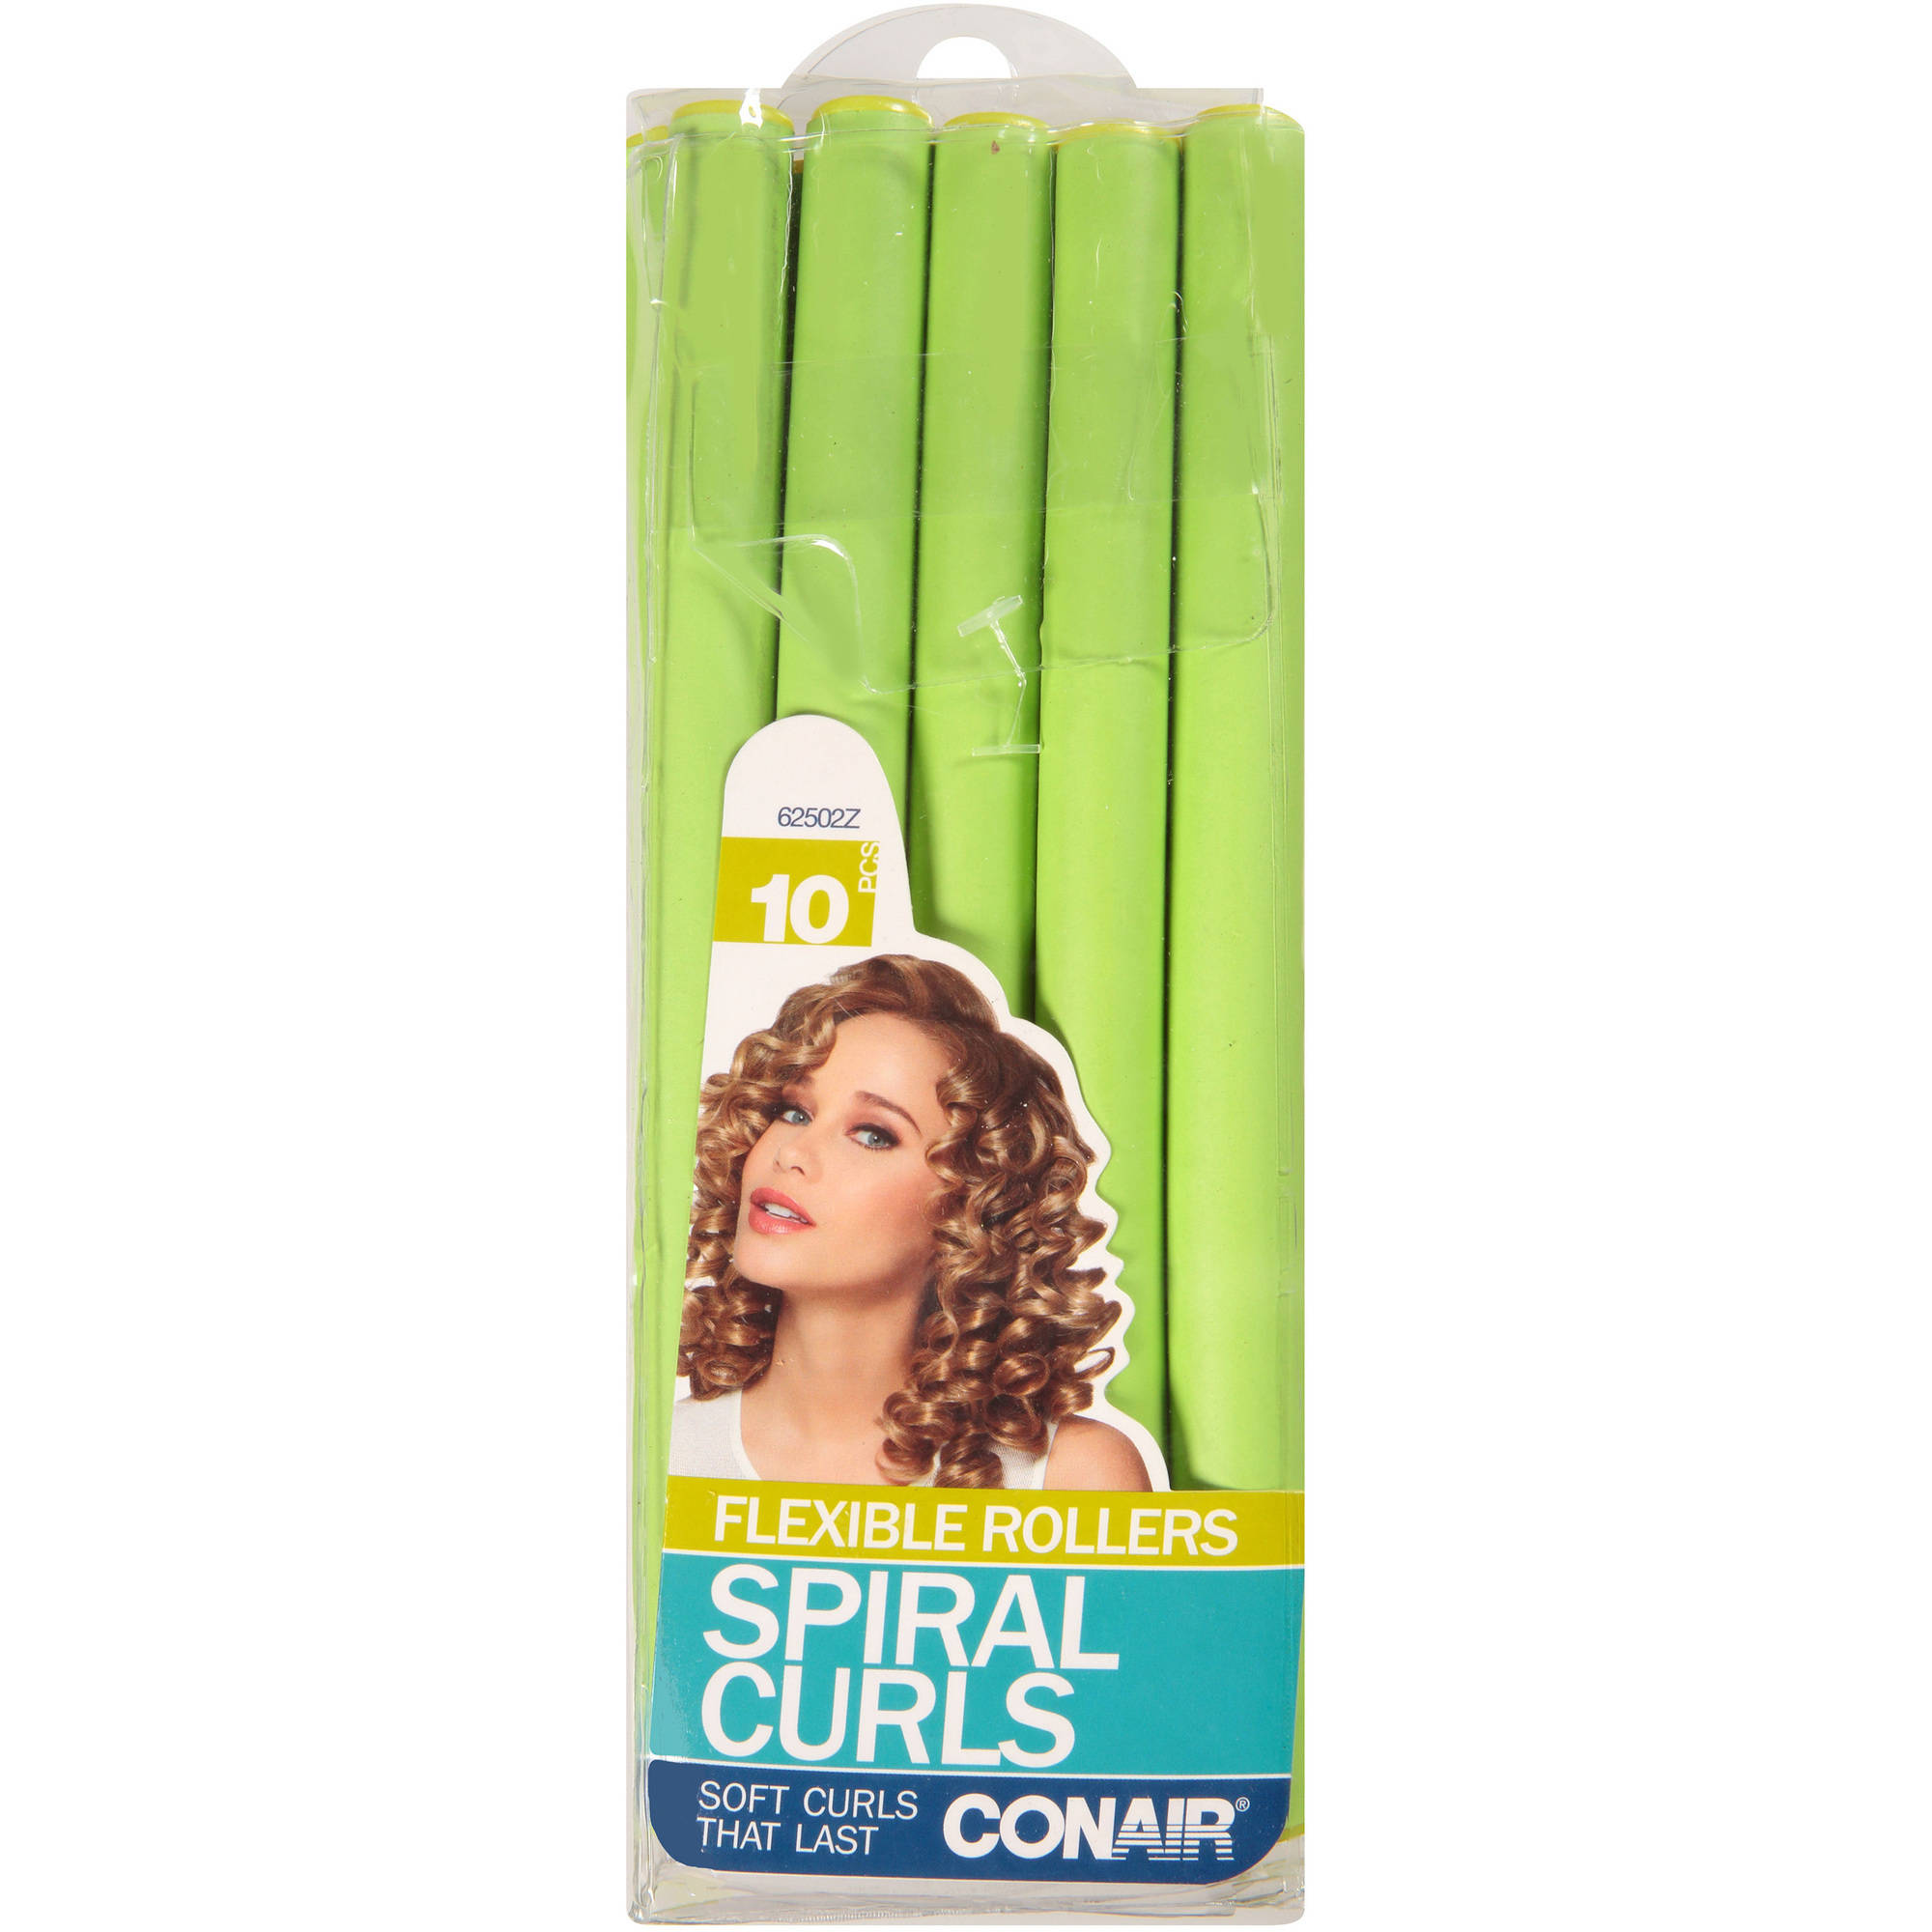 Conair Spiral Curls Flexible Rollers, 10 count